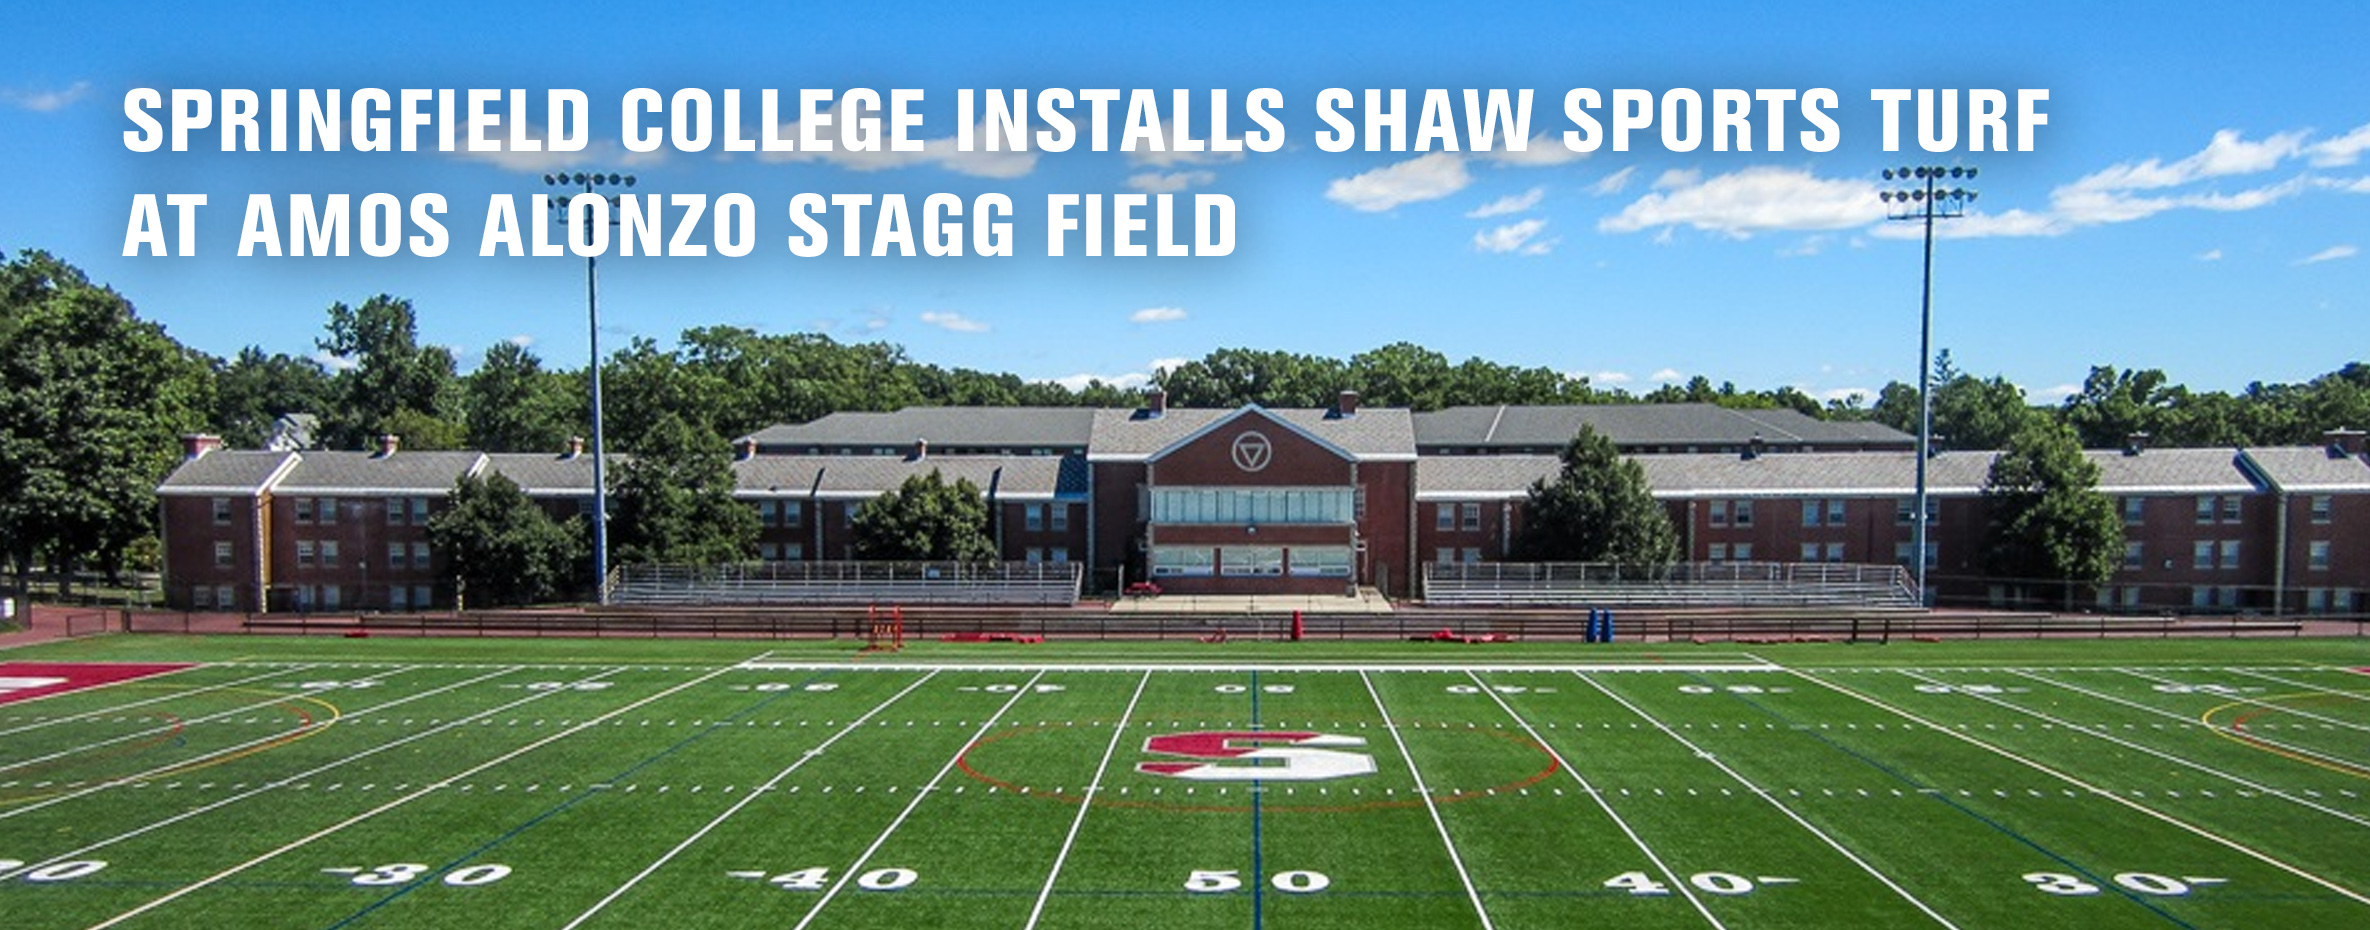 SPRINGFIELD COLLEGE INSTALLS SHAW SPORTS TURF AT AMOS ALONZO STAGG FIELD Image